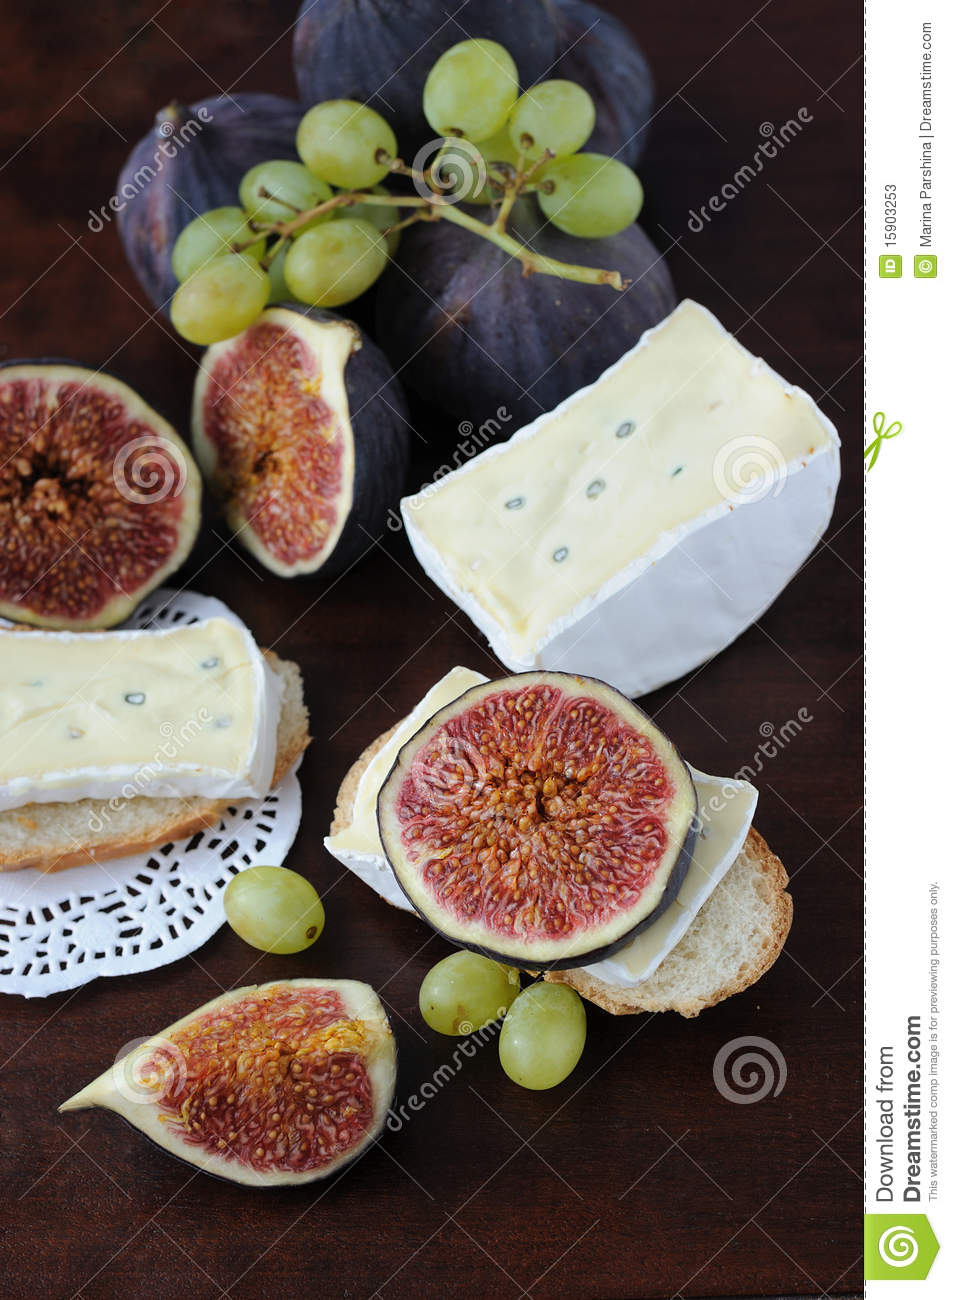 Figs And Cheese Stock Photos - Image: 15903253